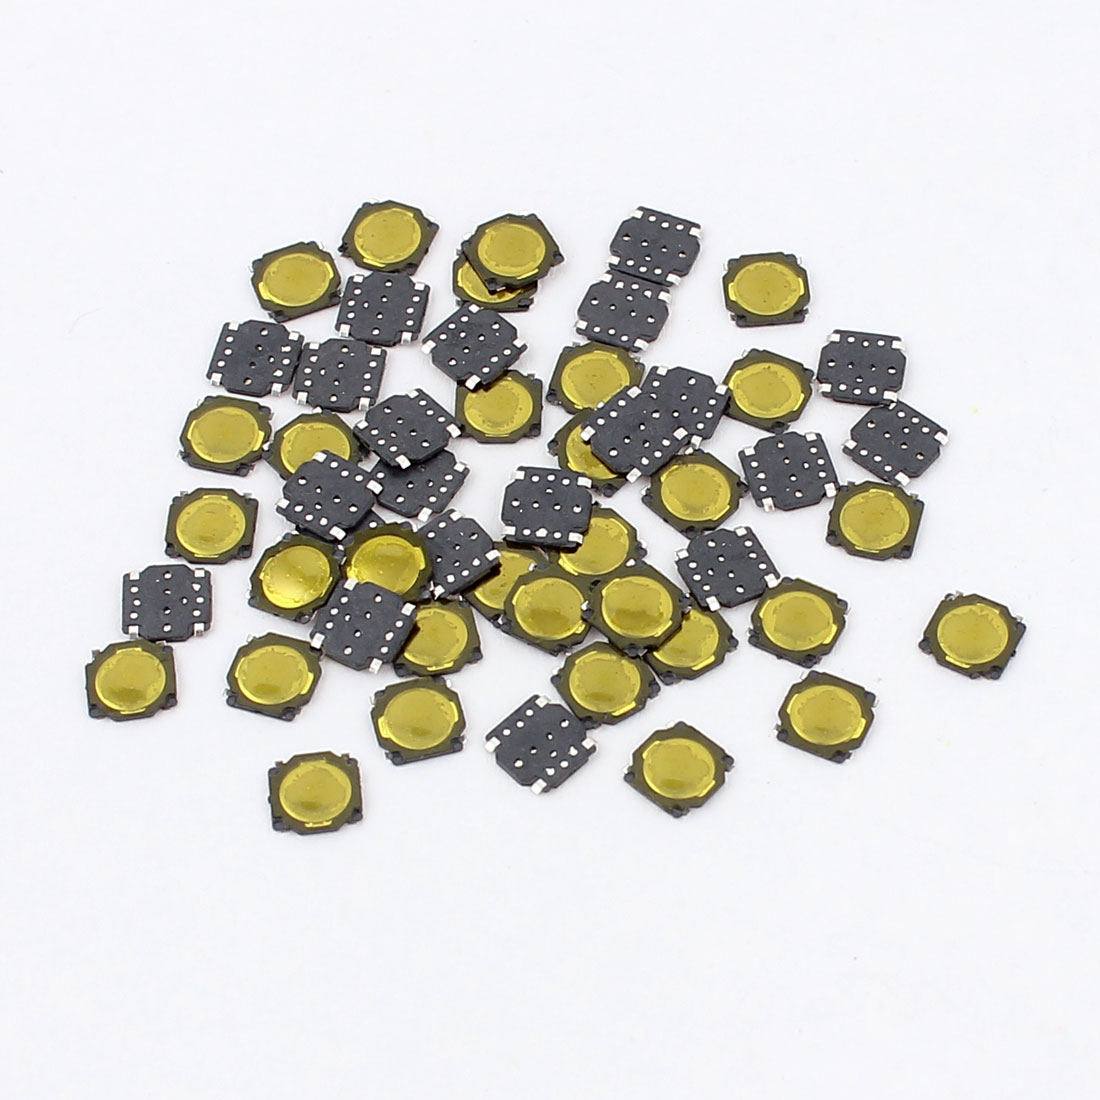 50 Pcs Square Momentary SMD Push Button Tact Tactile Switch 3.7x3.7mm